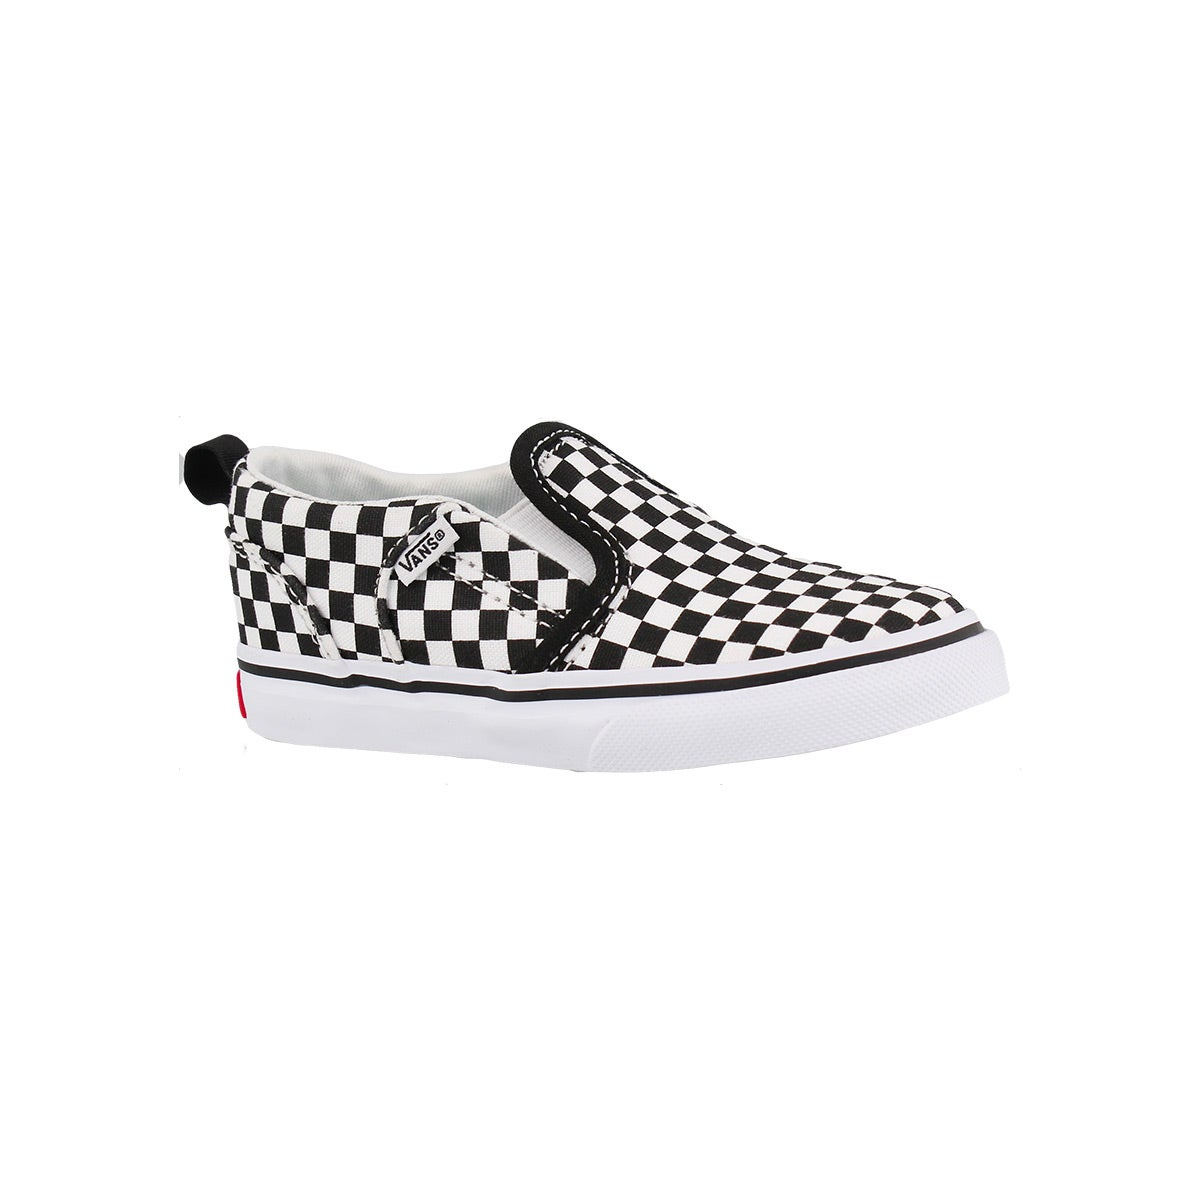 Infants' ASHER blk/wht checkard slip on sneakers